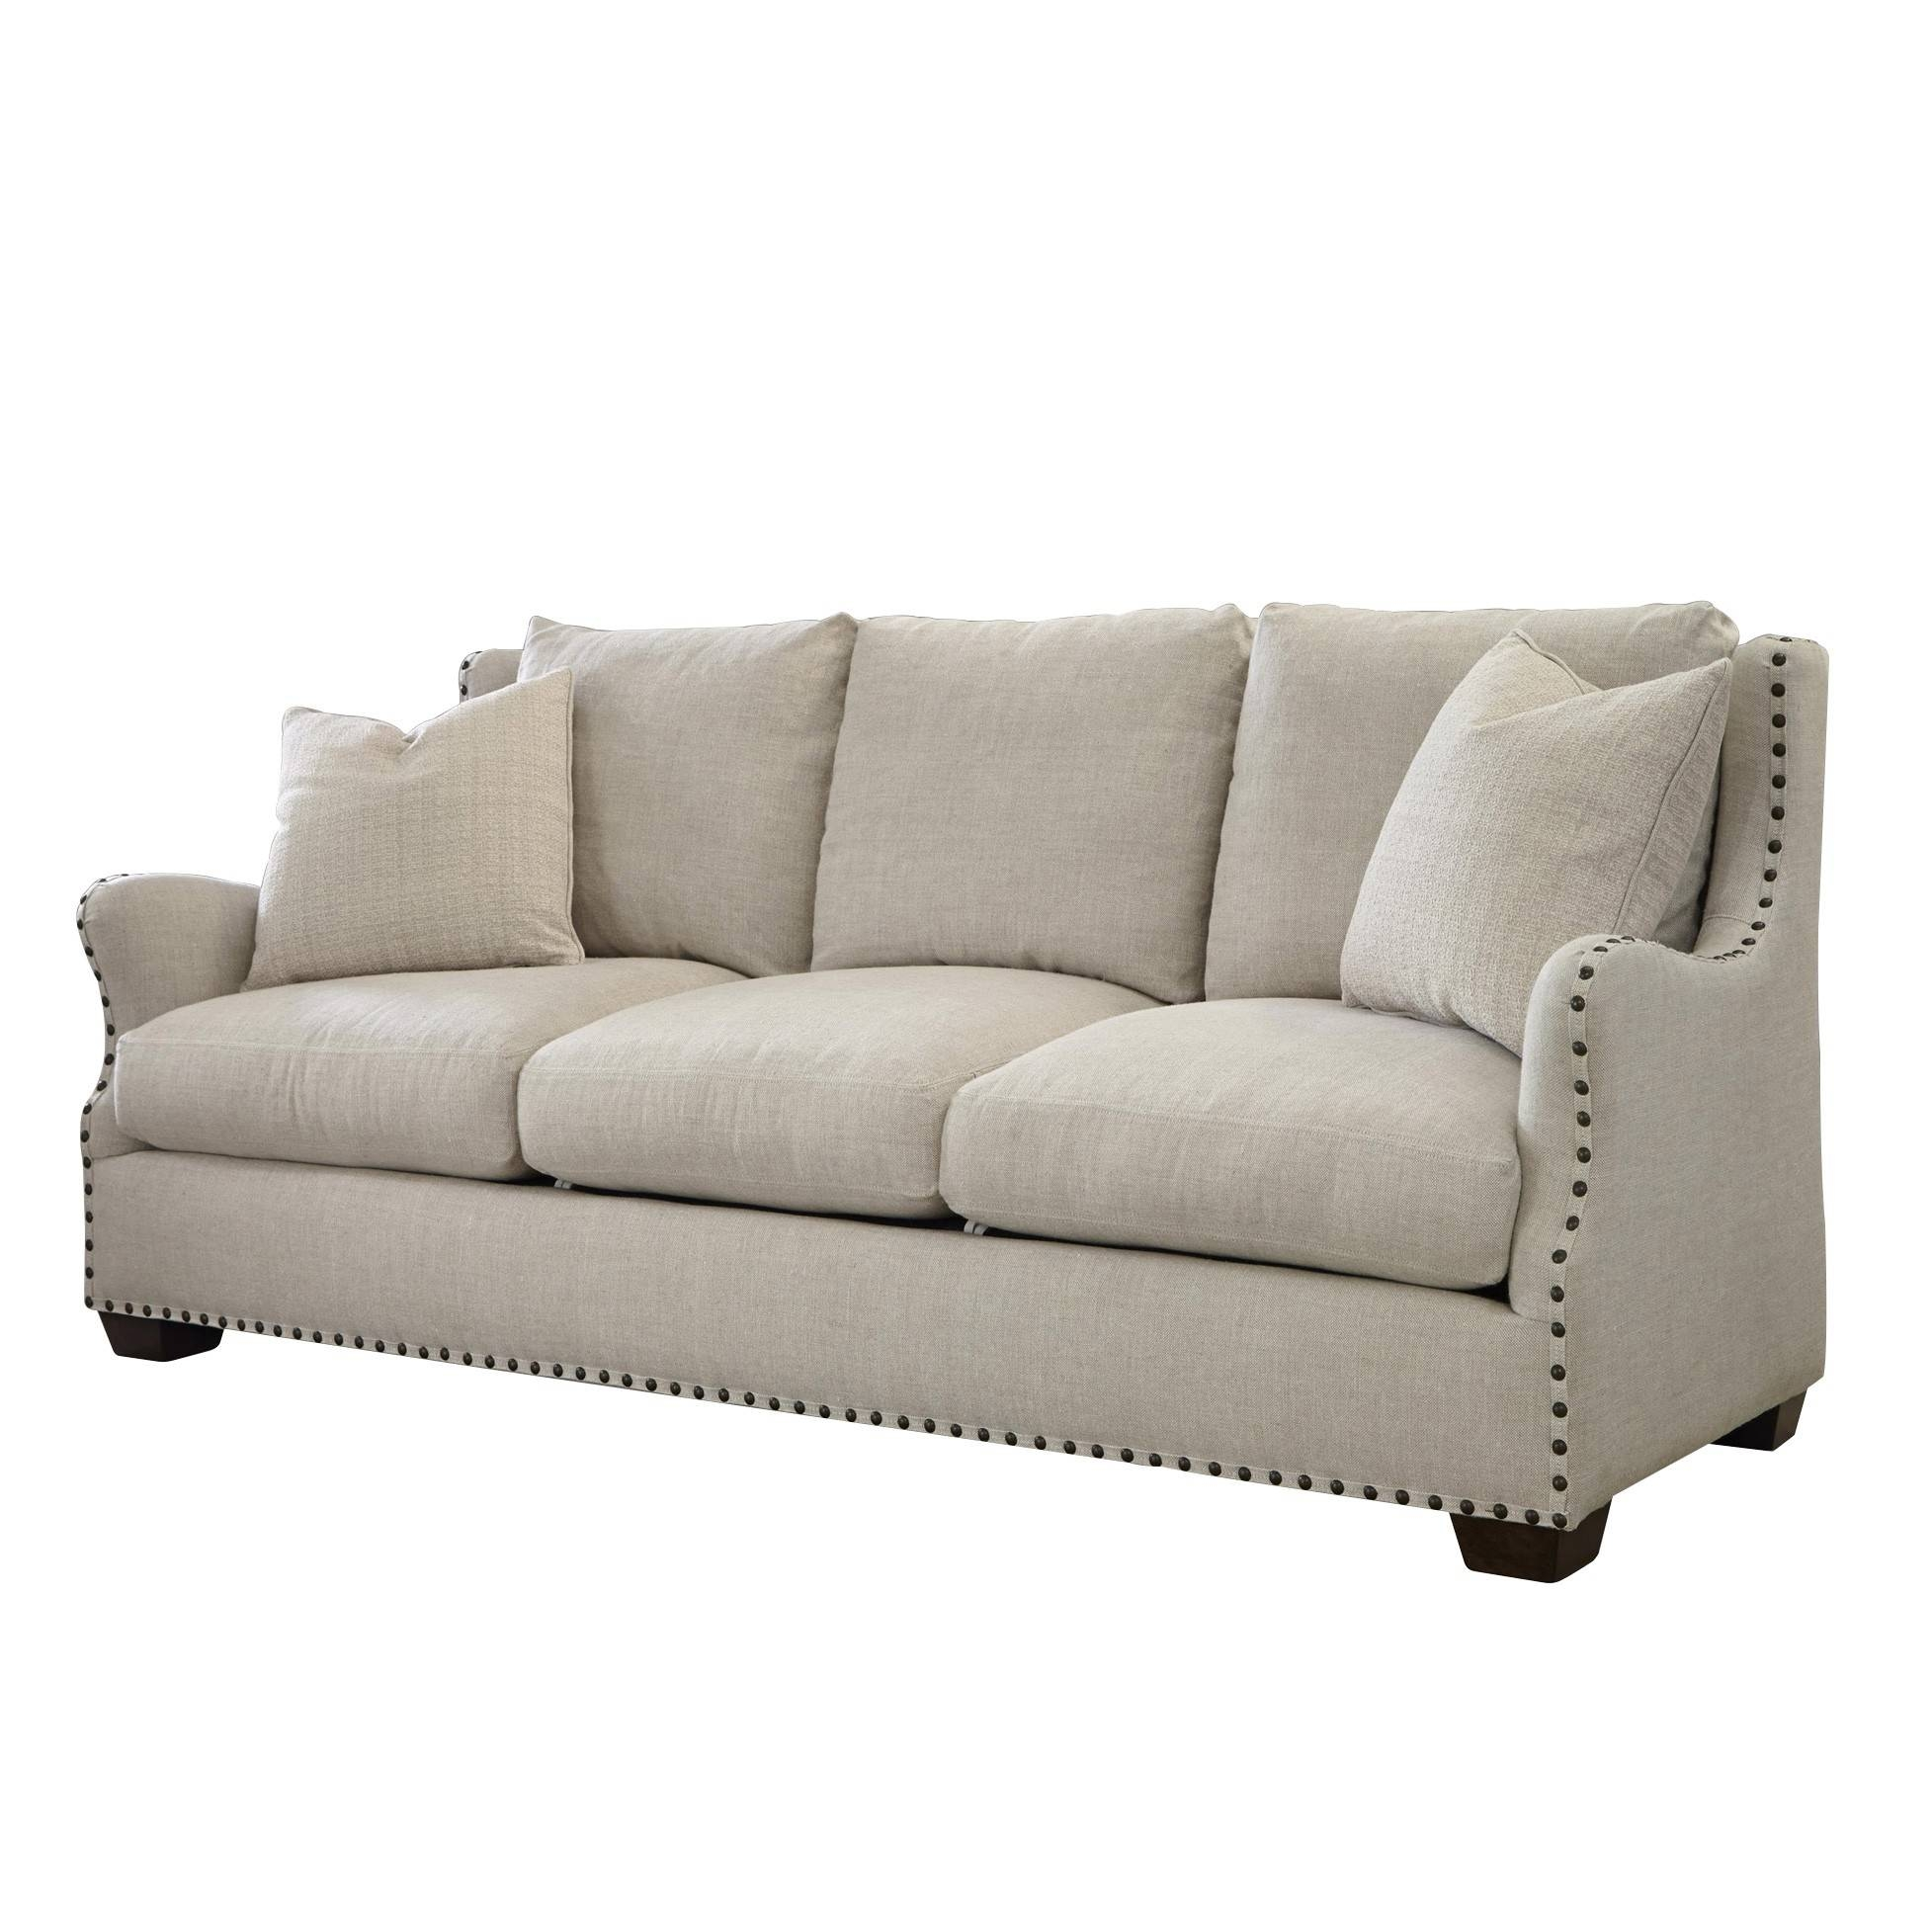 The Windsor Belgian Linen Sofa with regard to Windsor Sofas (Image 13 of 30)